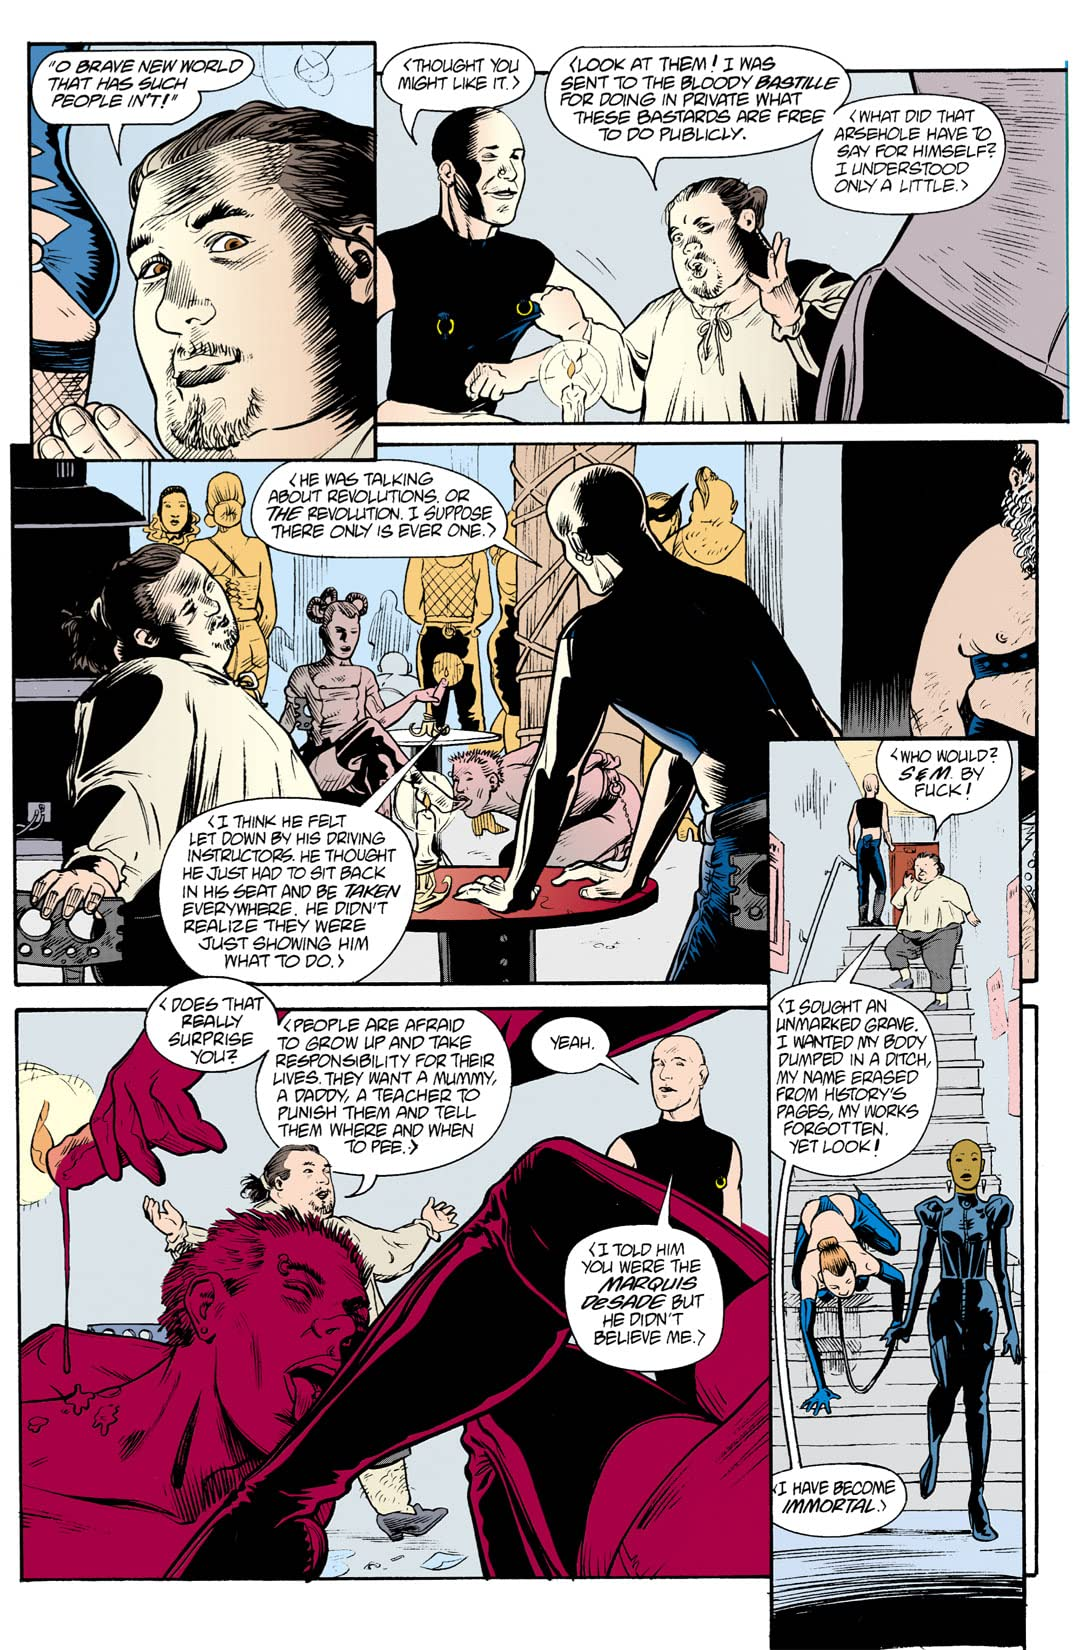 The Invisibles #8